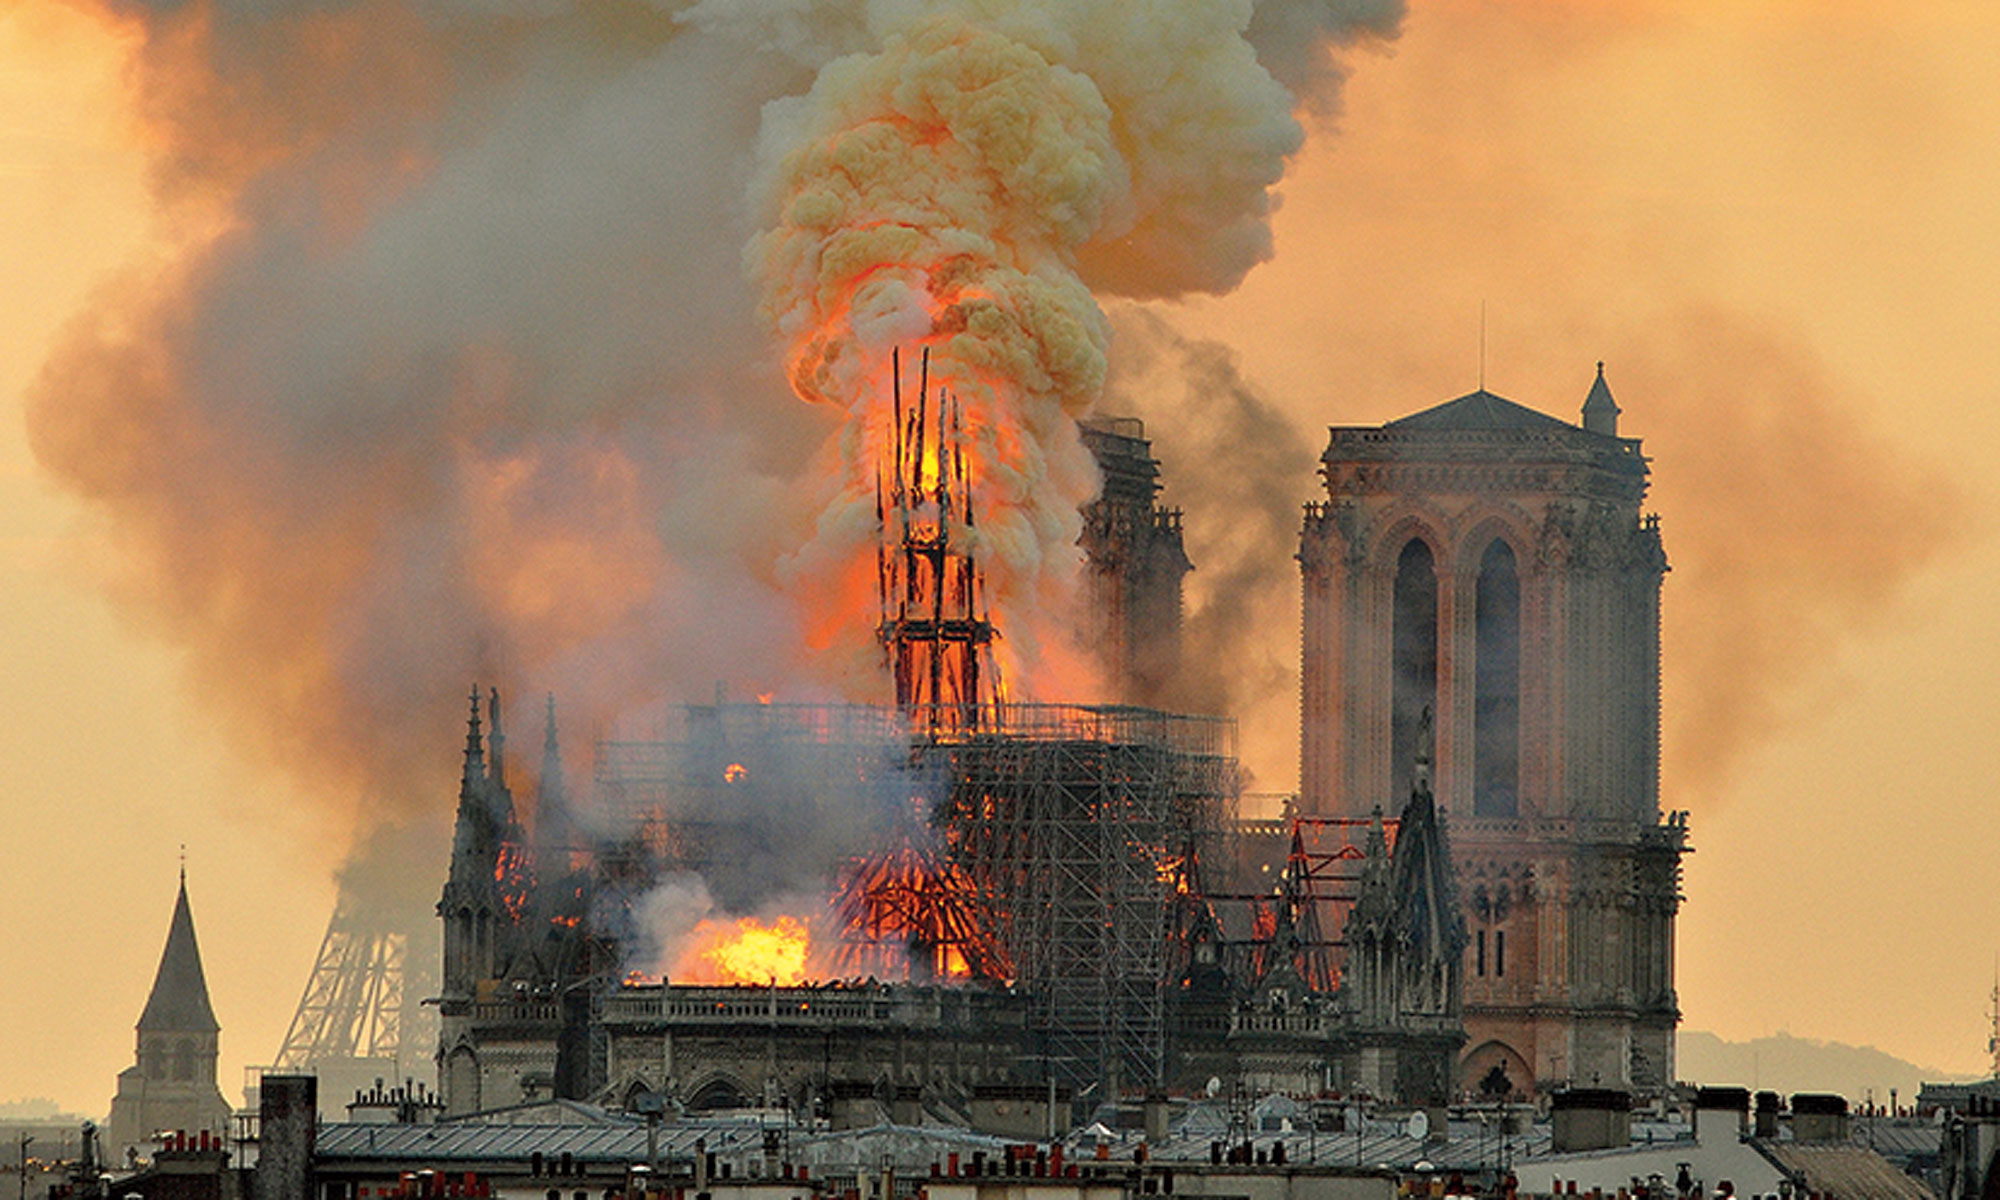 The Notre-Dame fire and Pulwama have something in common